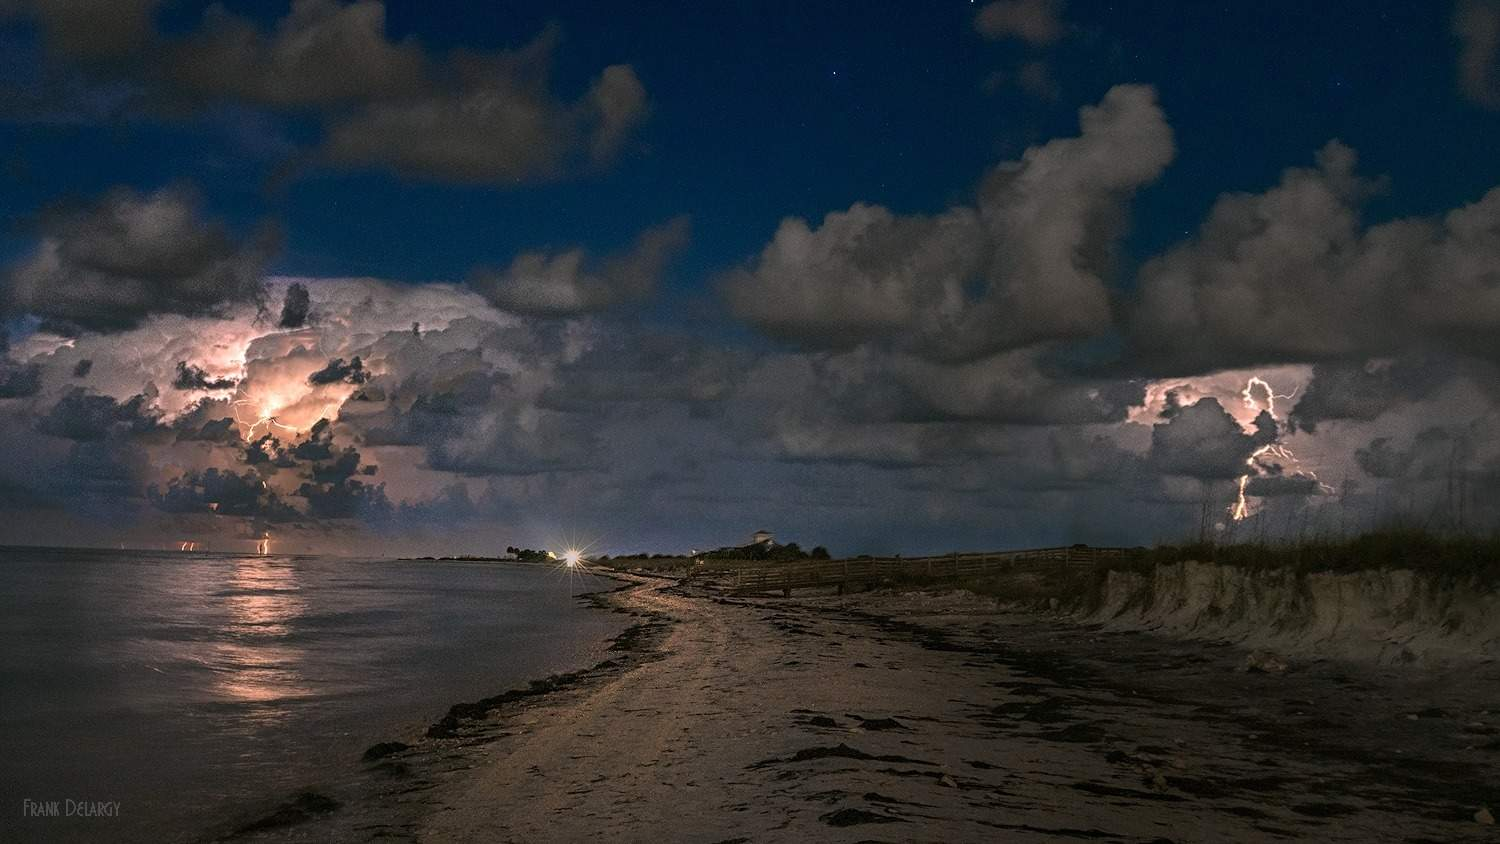 Enjoying the distant storms over the Gulf of Mexico from the beach. — at Honeymoon Island State Park.